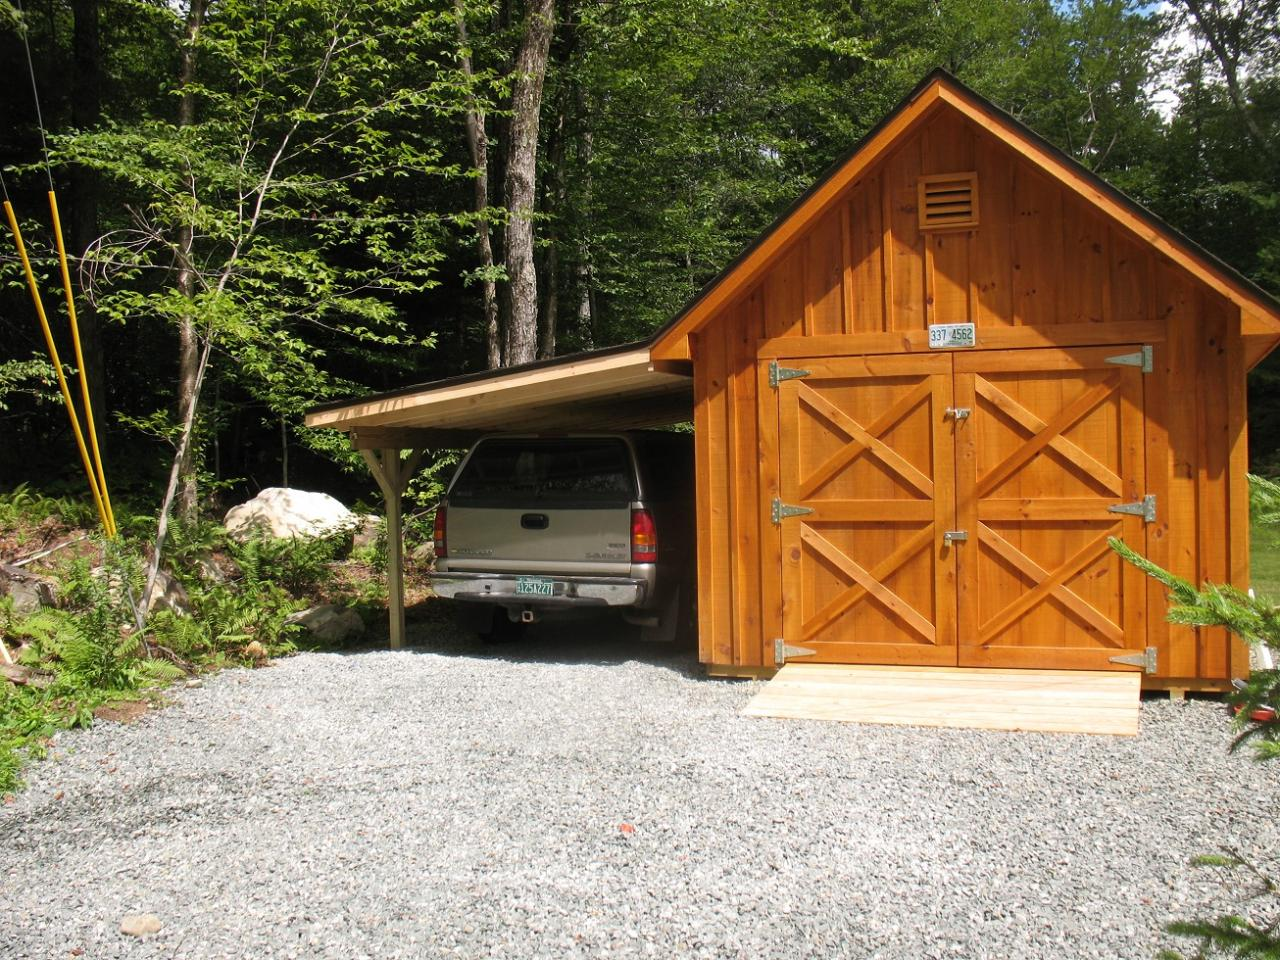 sheds housing outside buena large shed meadows rentals view outdoor vista